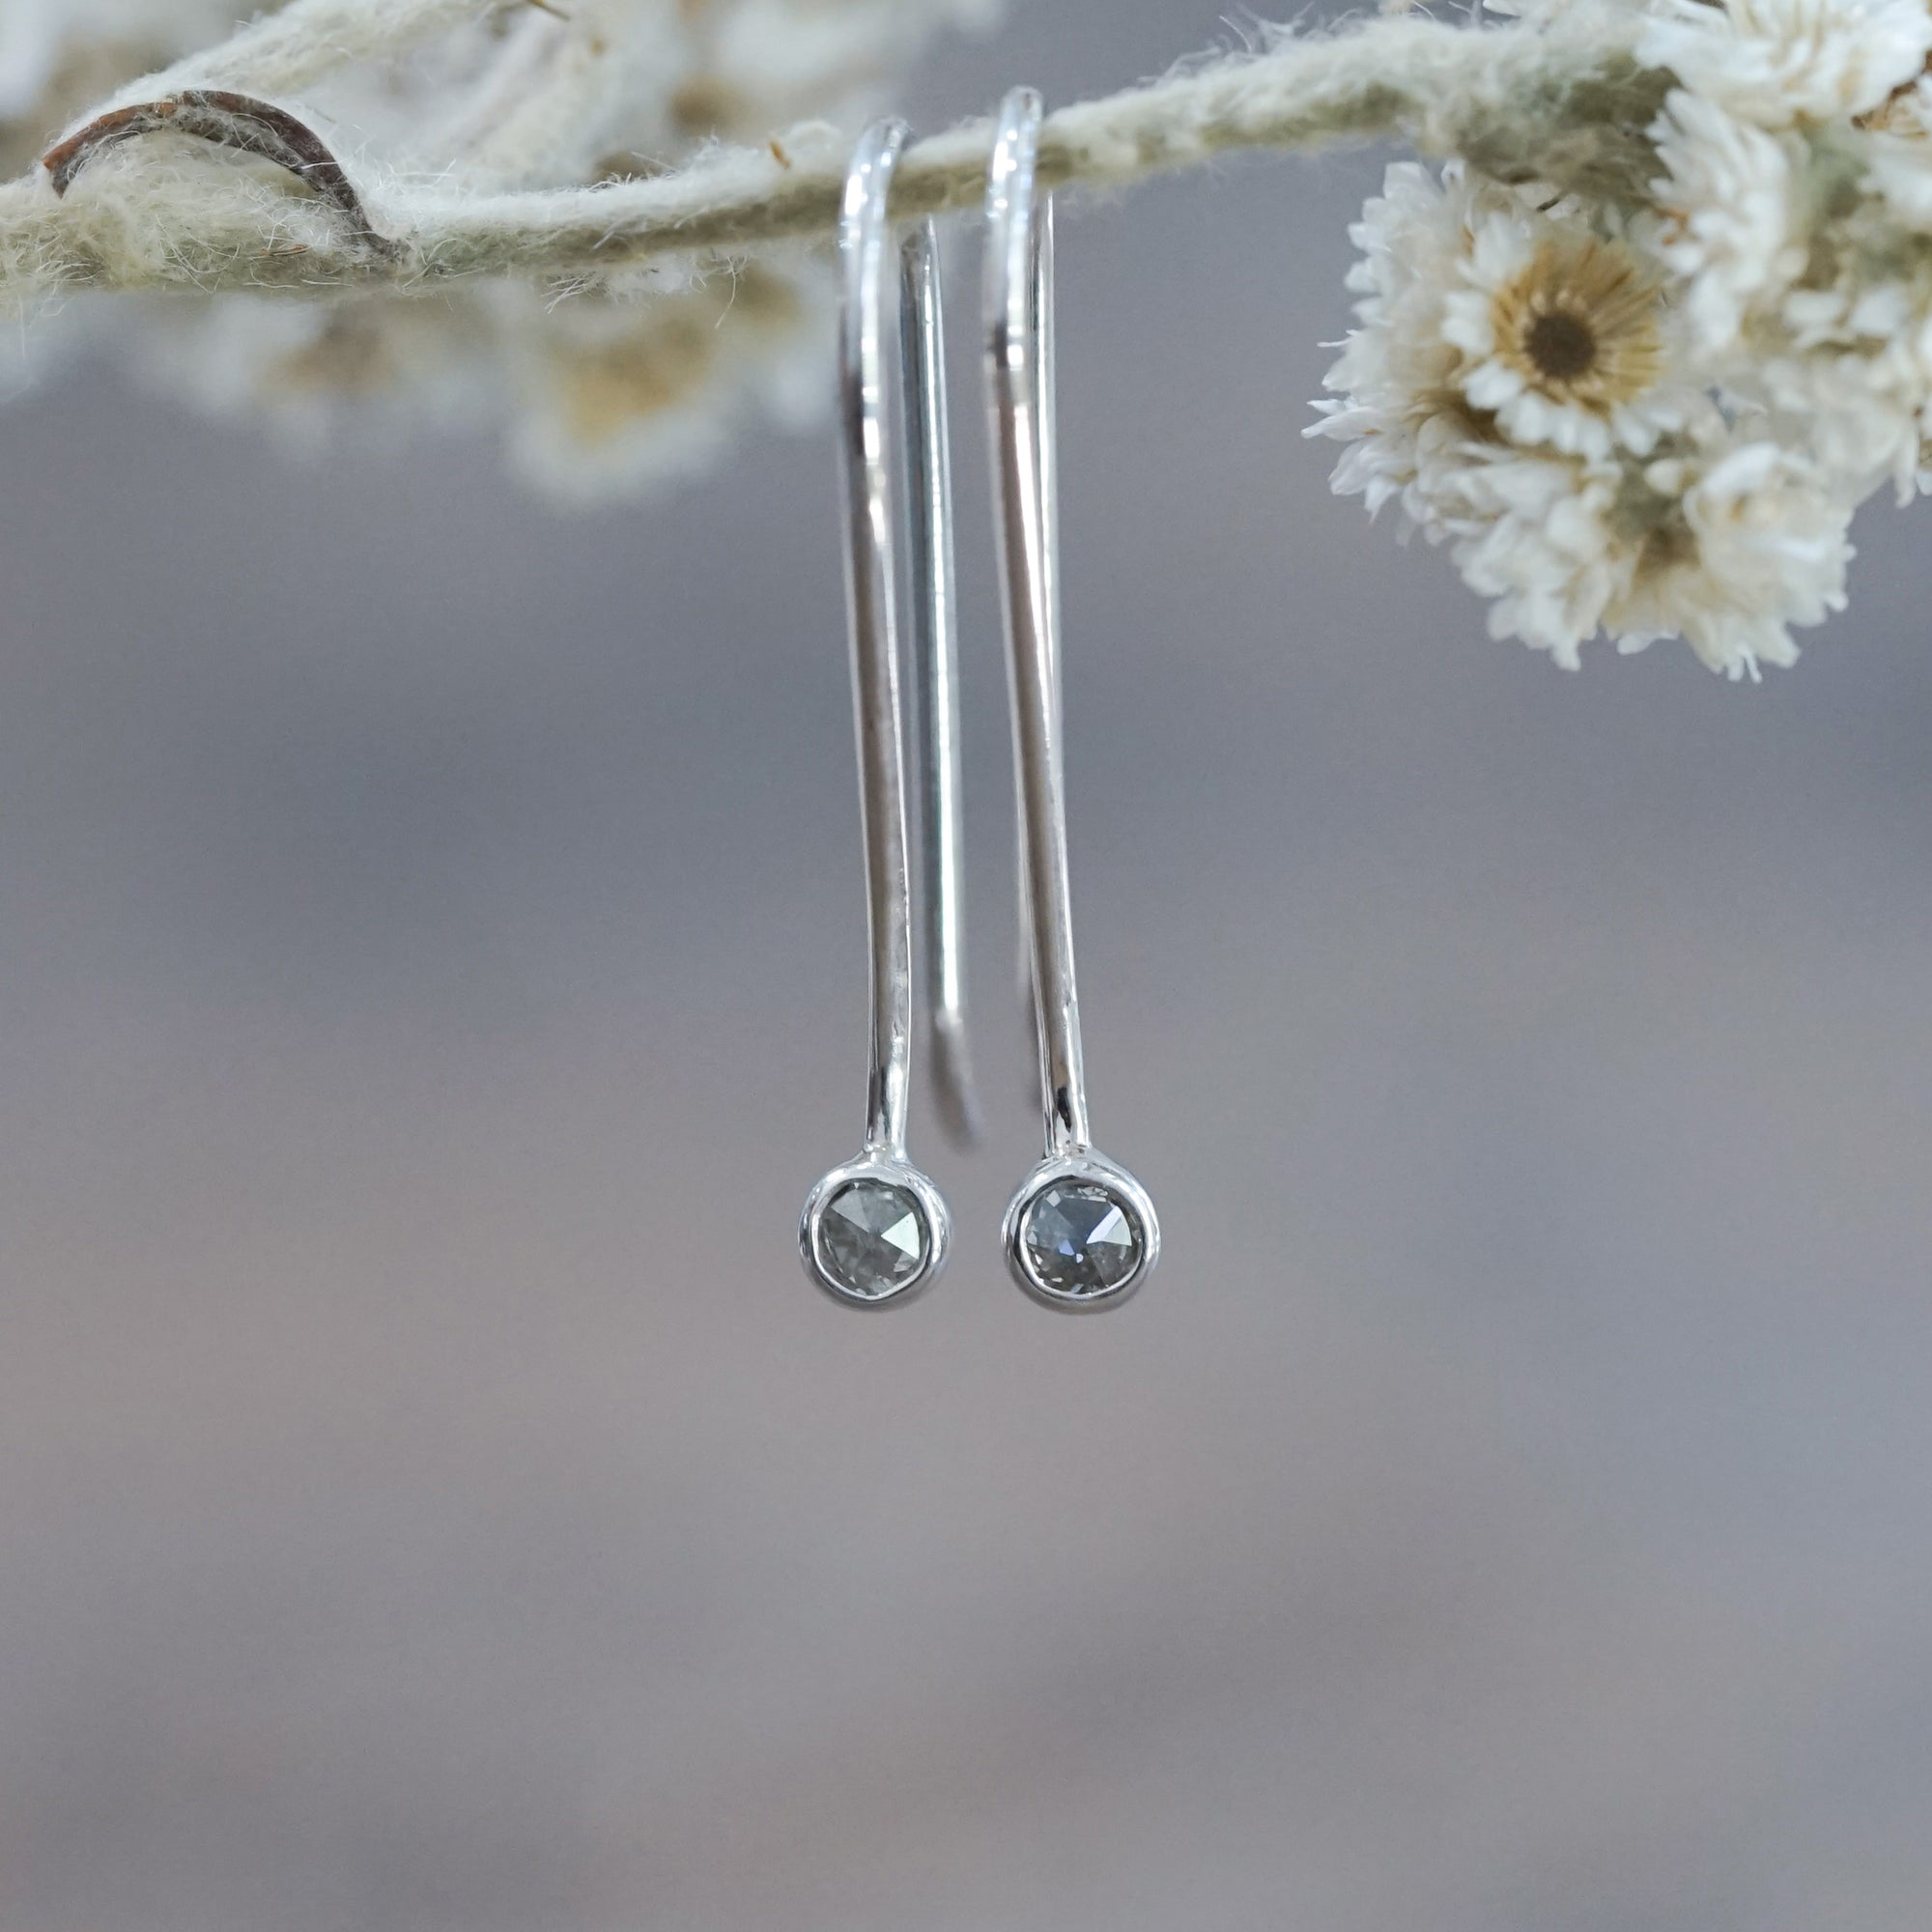 Long Borneo Diamond Earrings